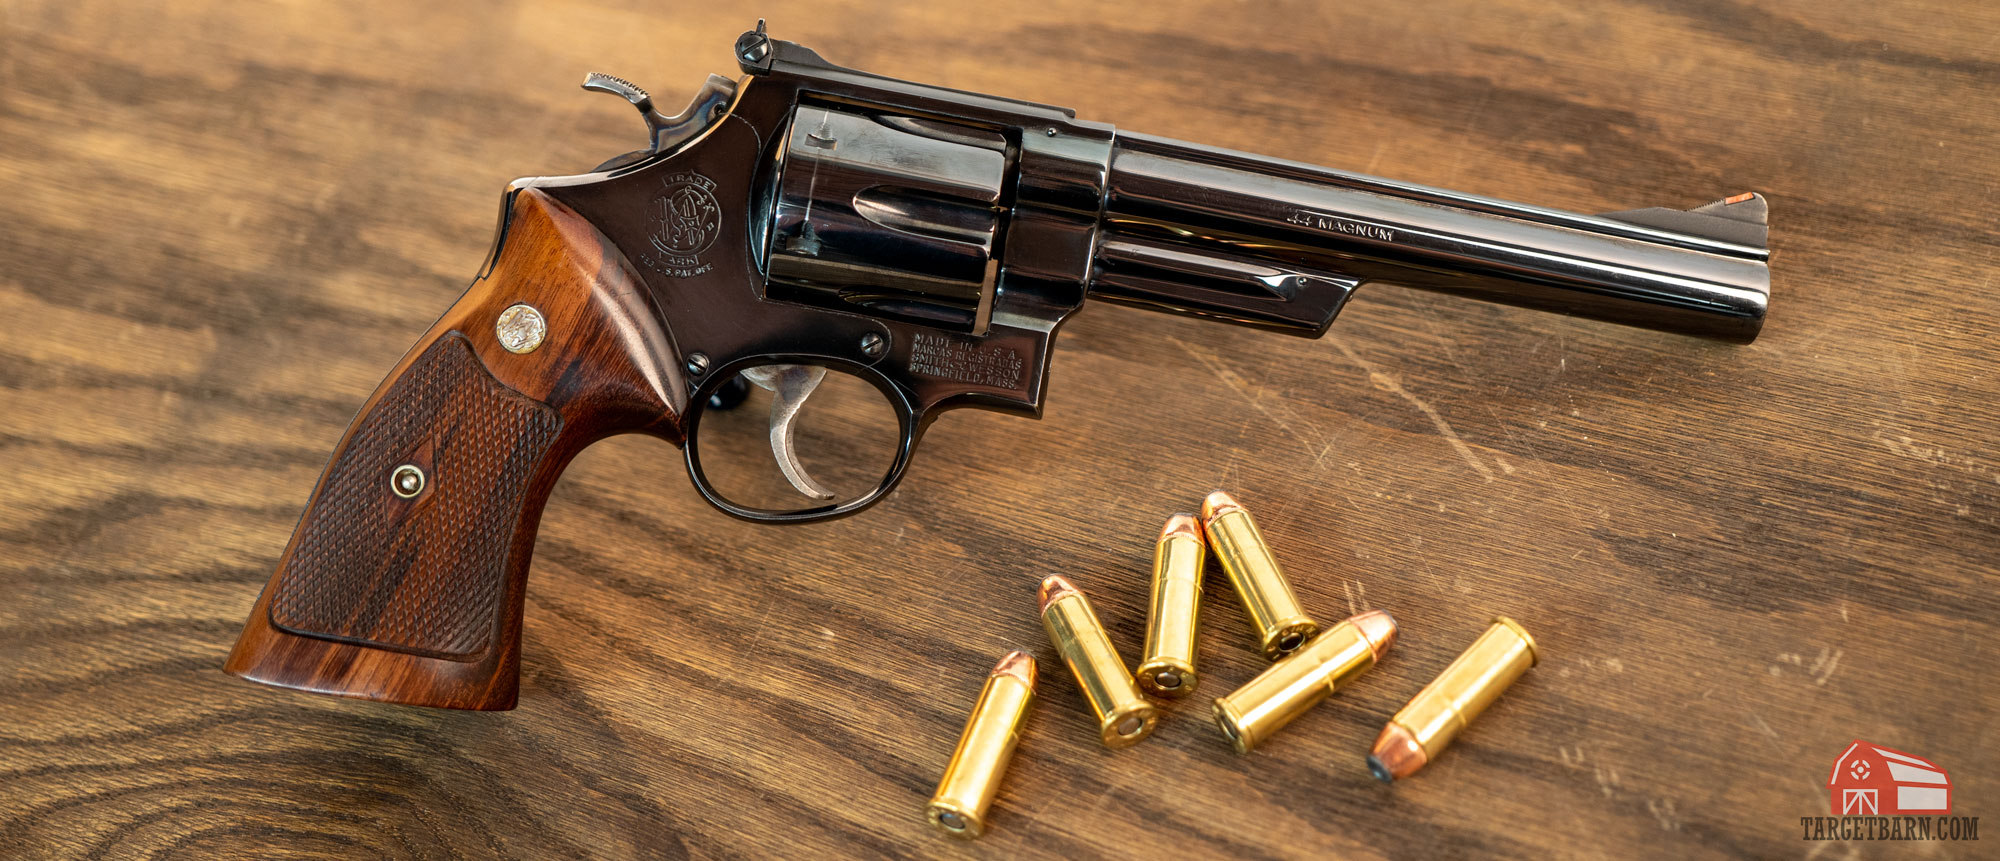 a smith and wesson model 29 revolver with 44 magnum ammo